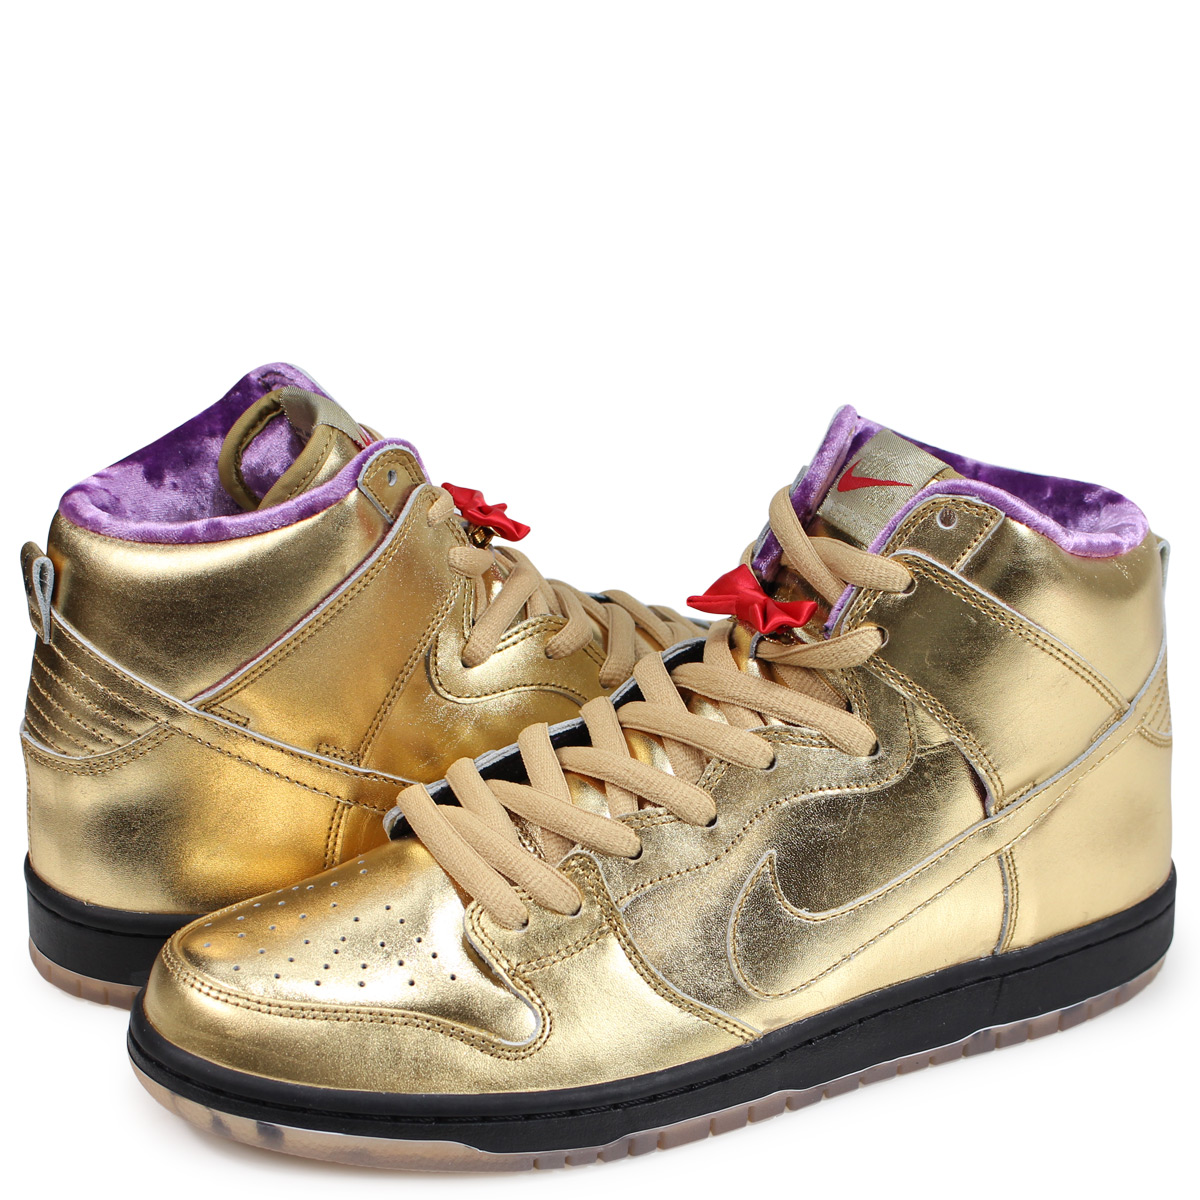 huge discount 4ac20 62f1e Nike NIKE SB dunk high sneakers men DUNK HIGH HUMIDITY collaboration gold  AV4168-776